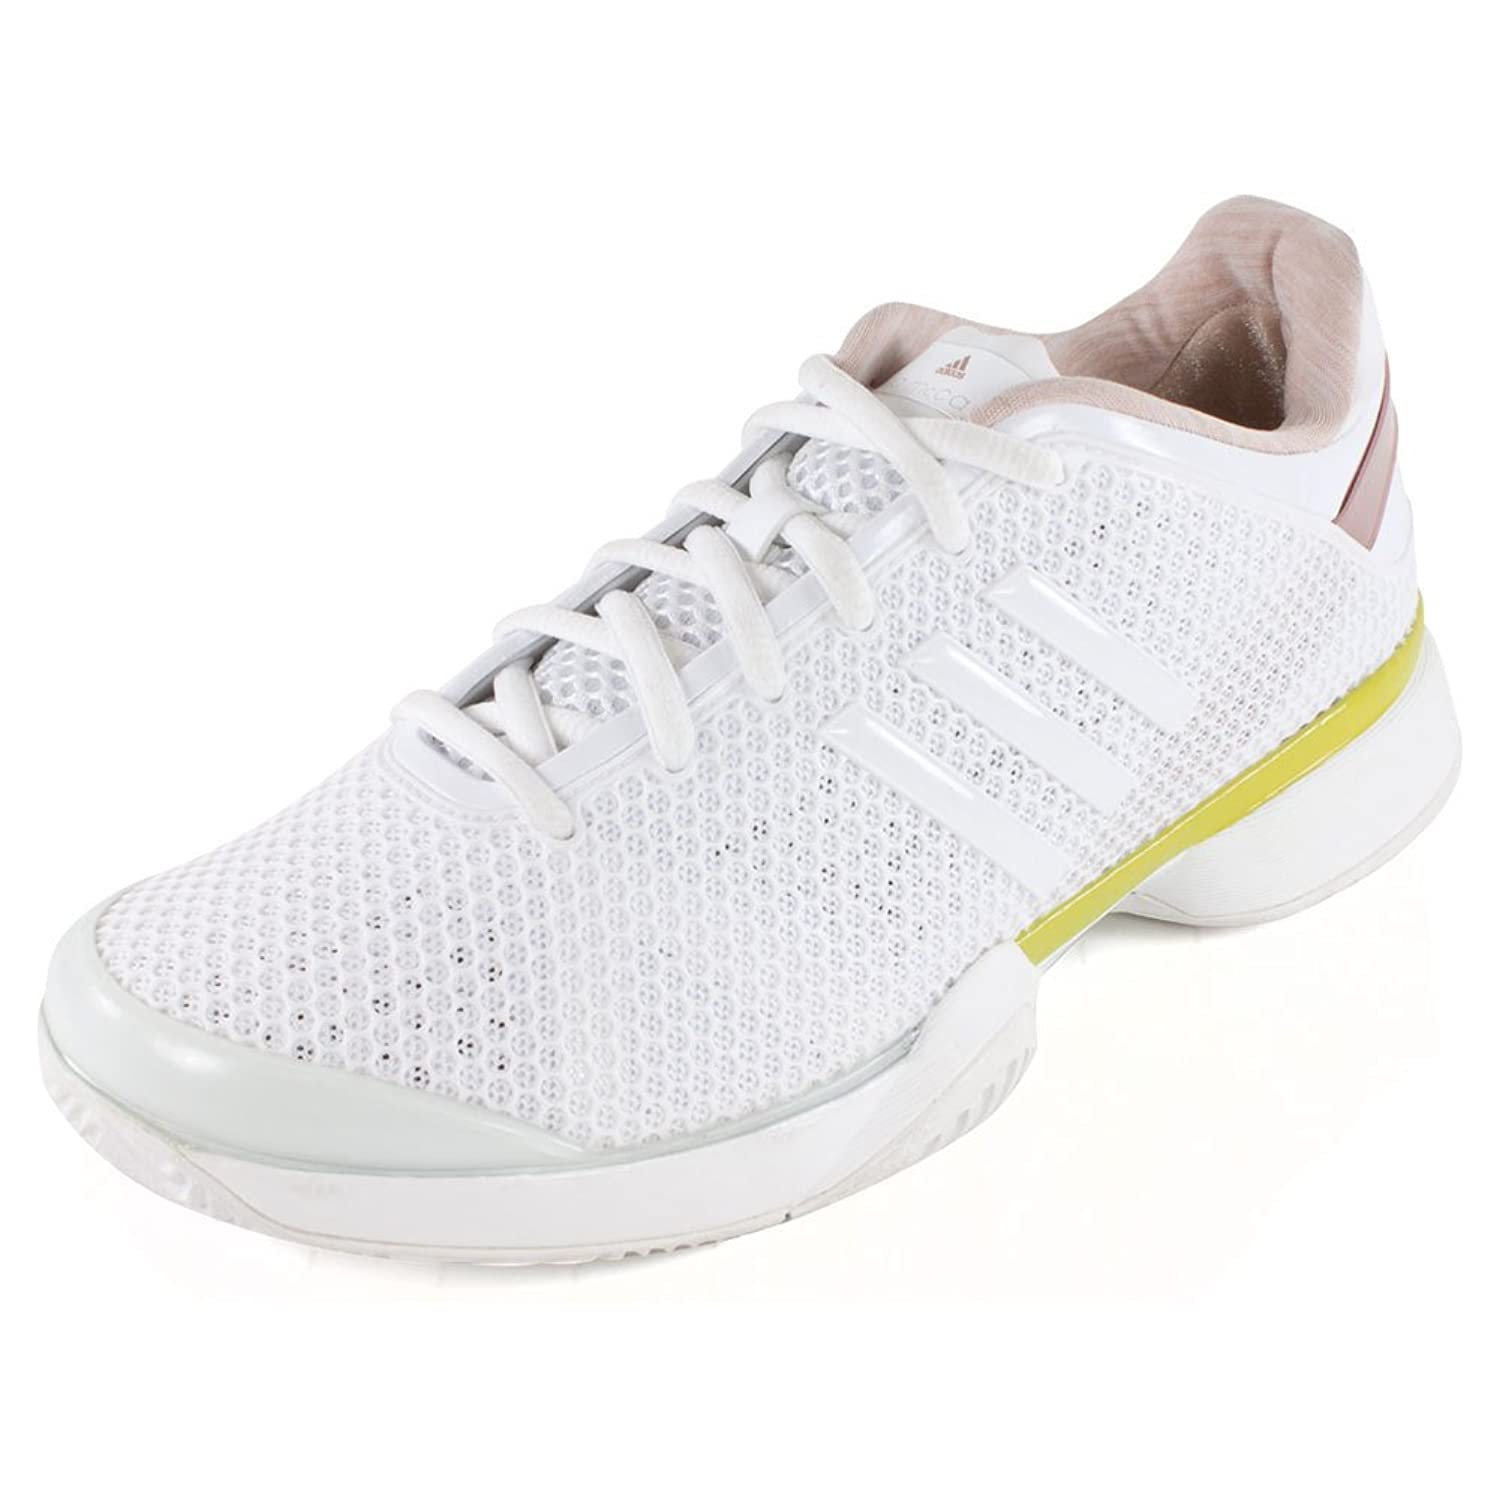 Tennis Shoes low-cost